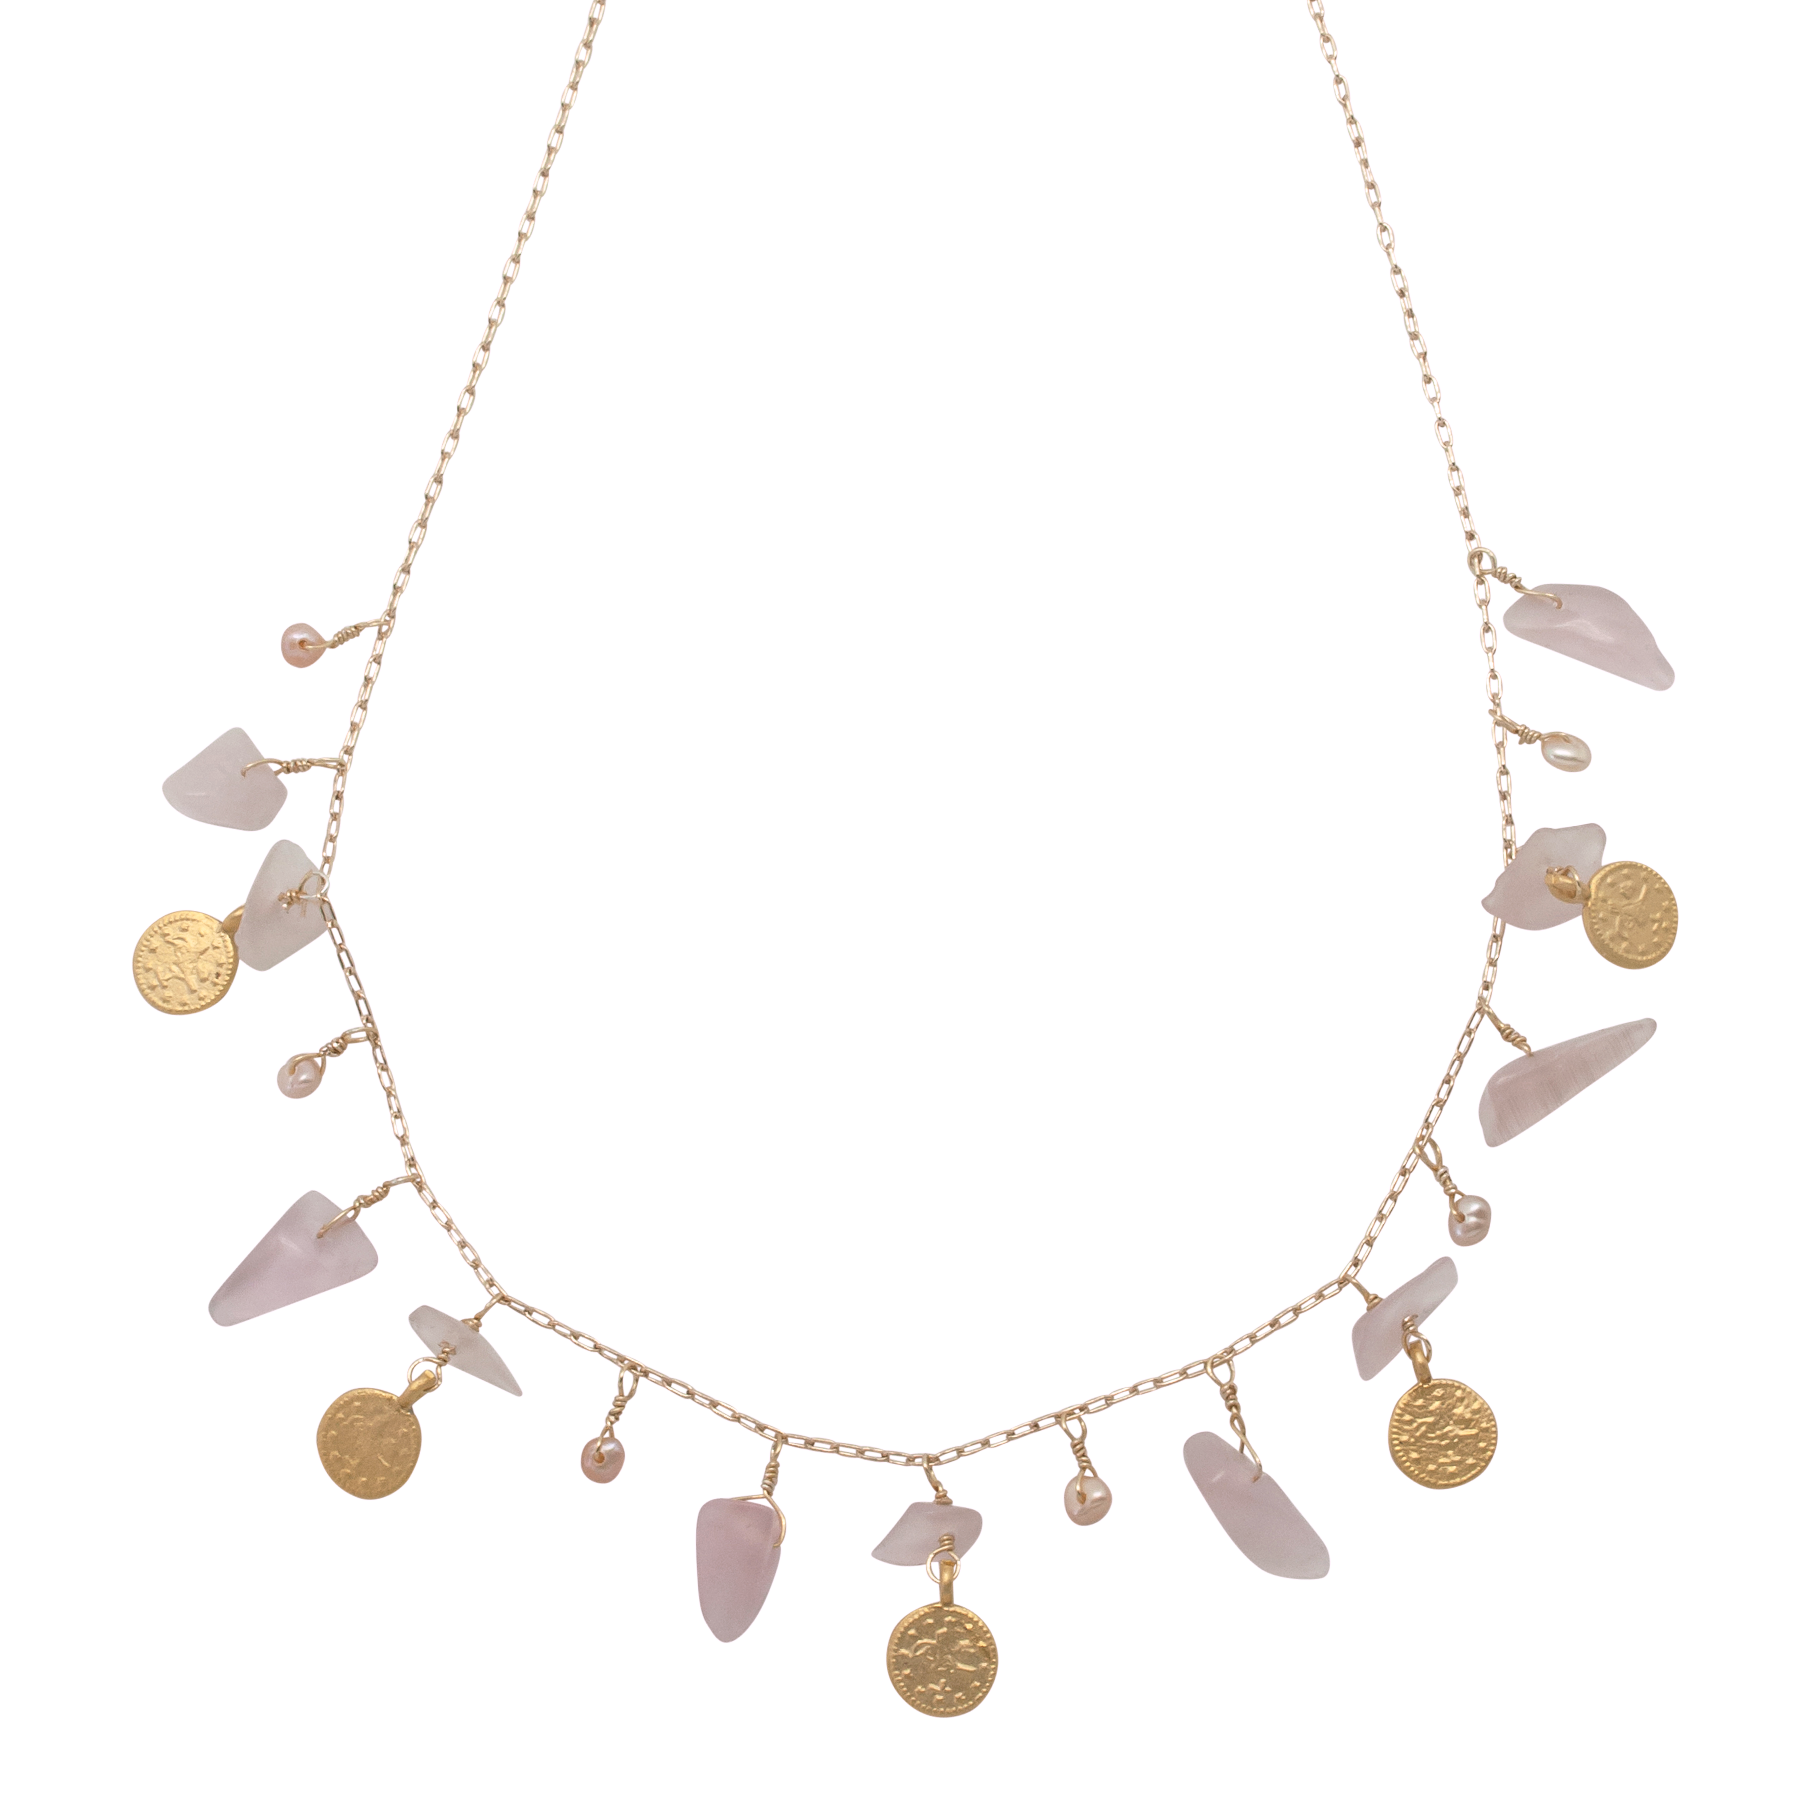 rose quartz disc charm necklace by vivien walsh on white background